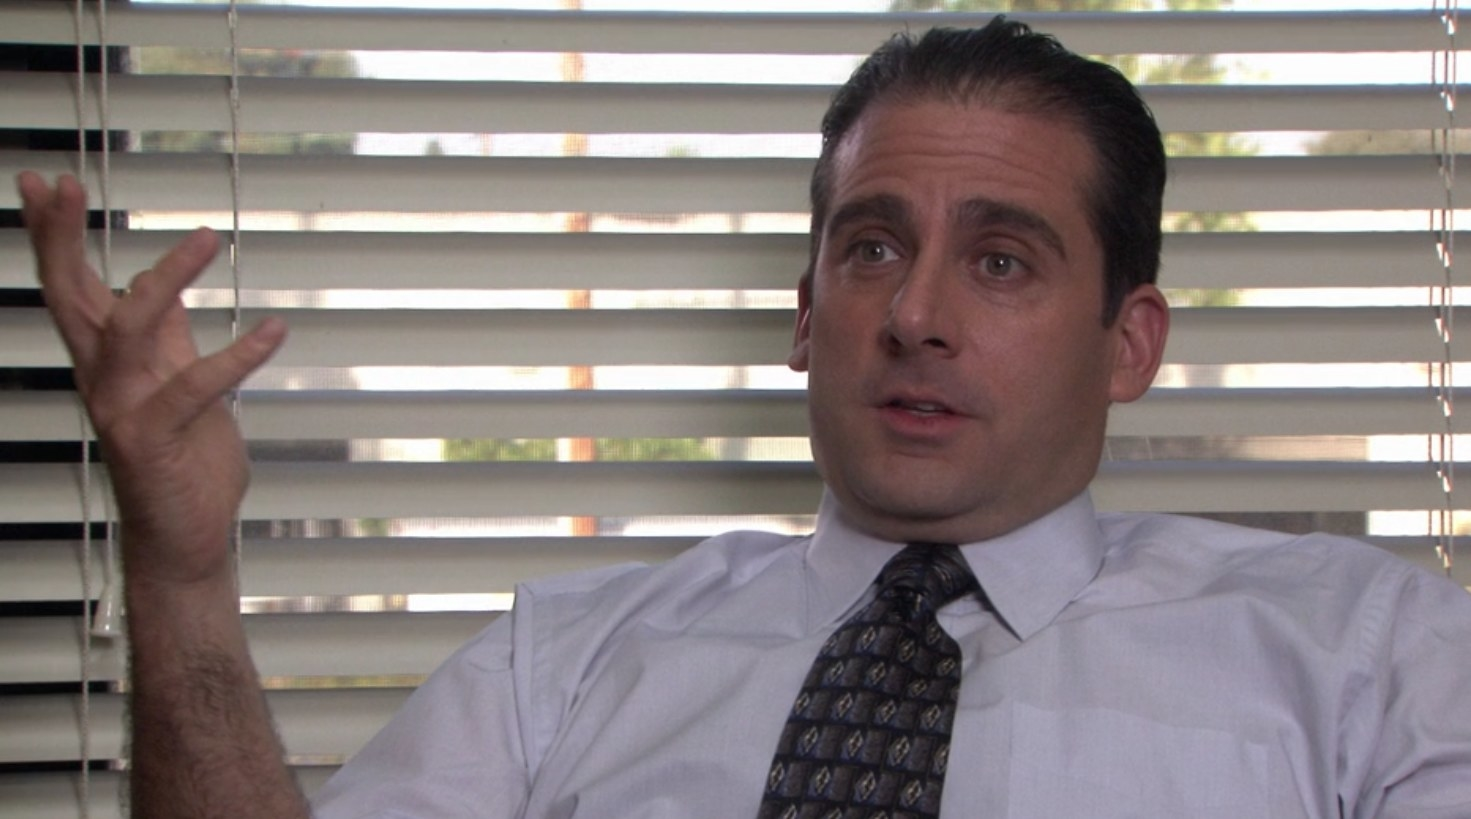 Michael sits in his office, gesturing with his hands as he talks